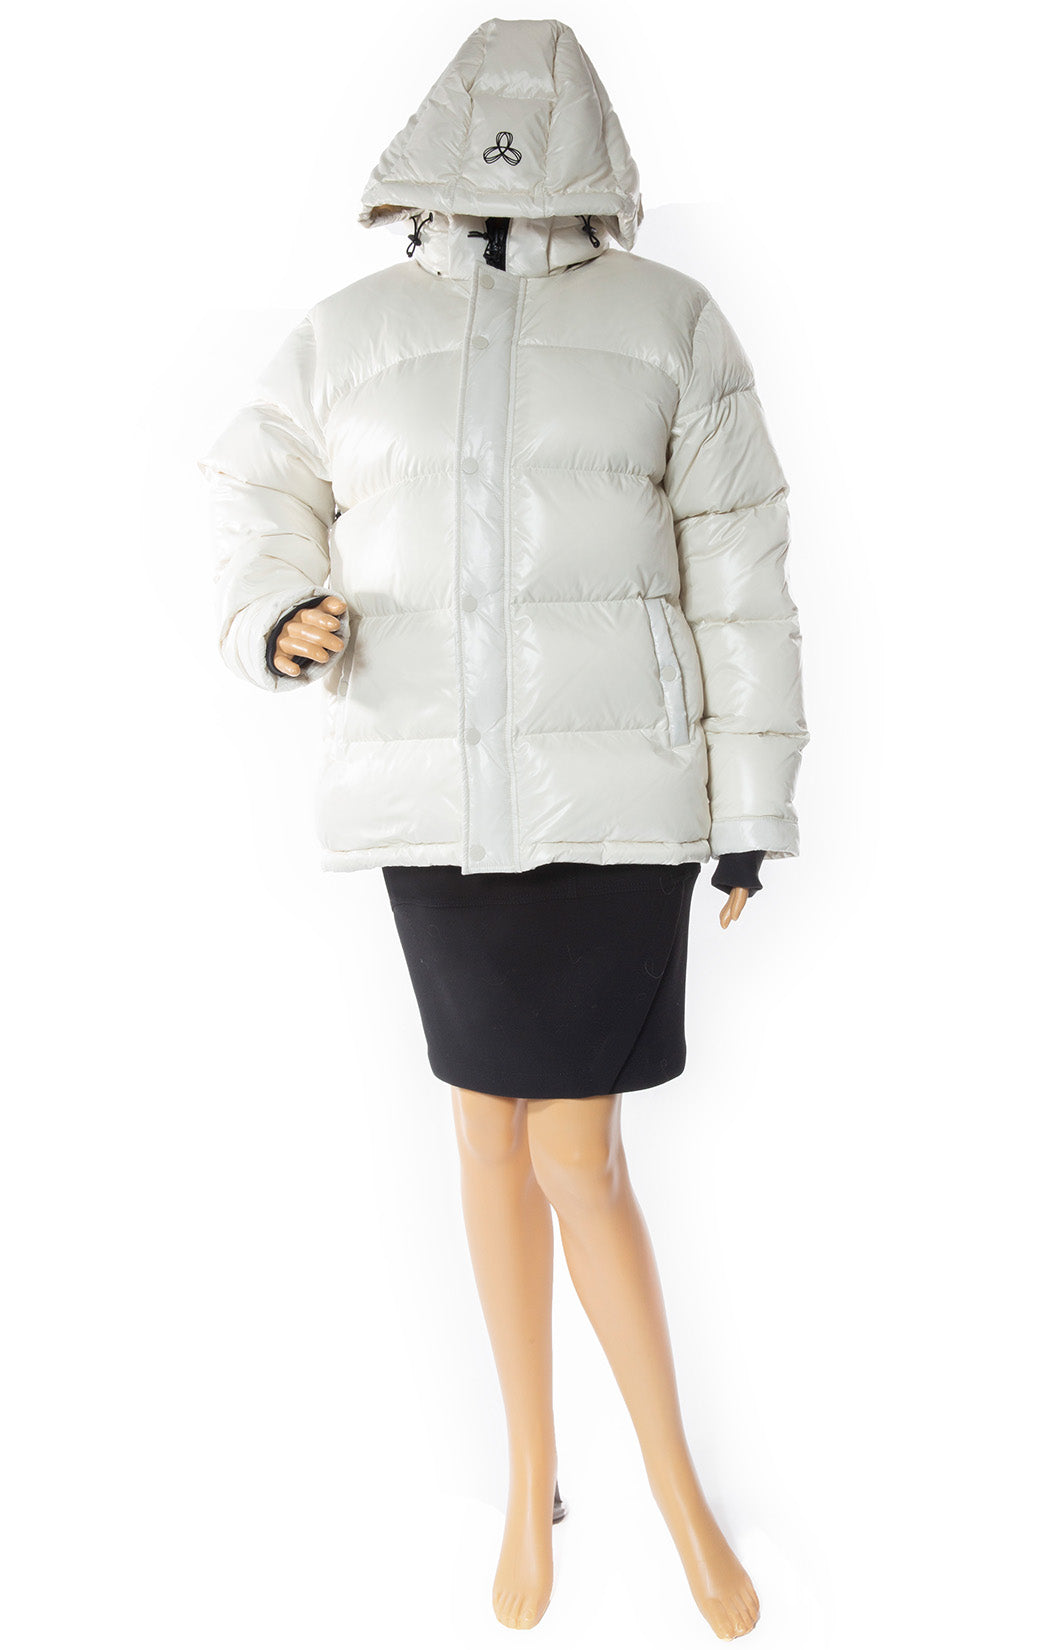 Front view of TNA Puffer Jacket with Tags Size: Small